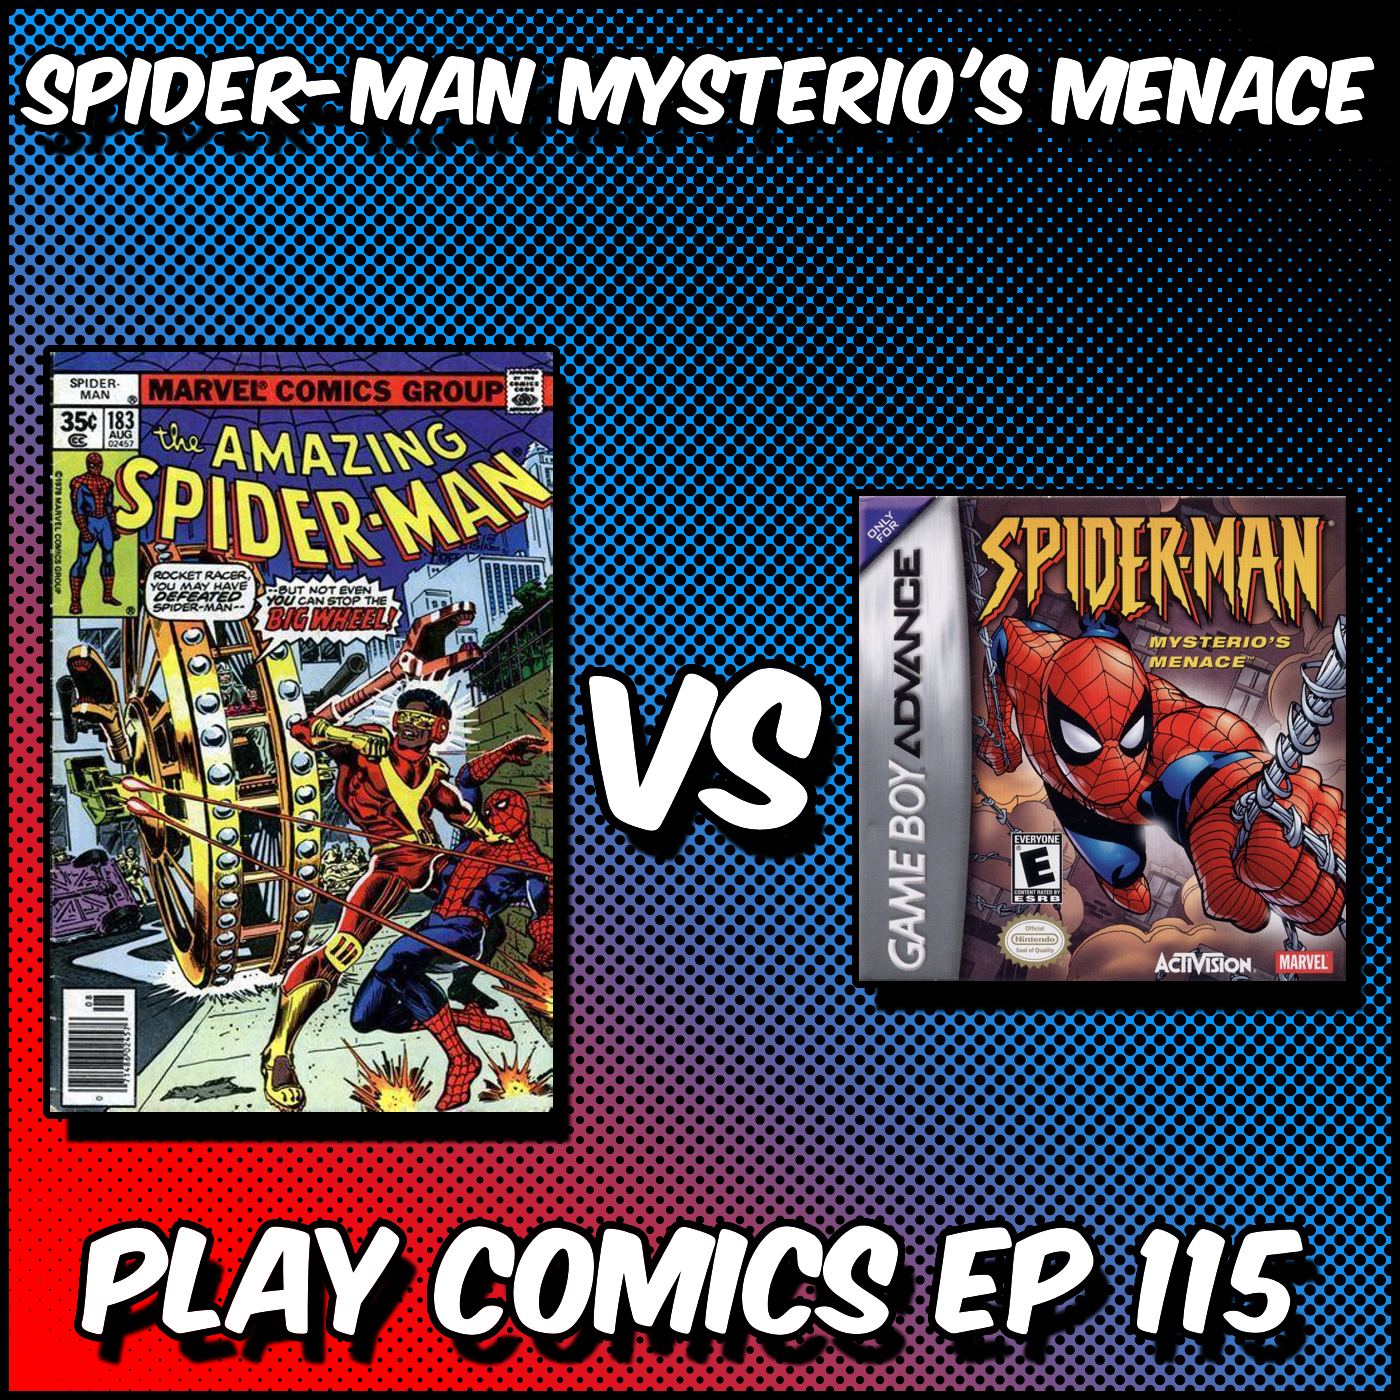 Spider-Man Mysterio's Menace with Aaron Weiss (Weisscast)